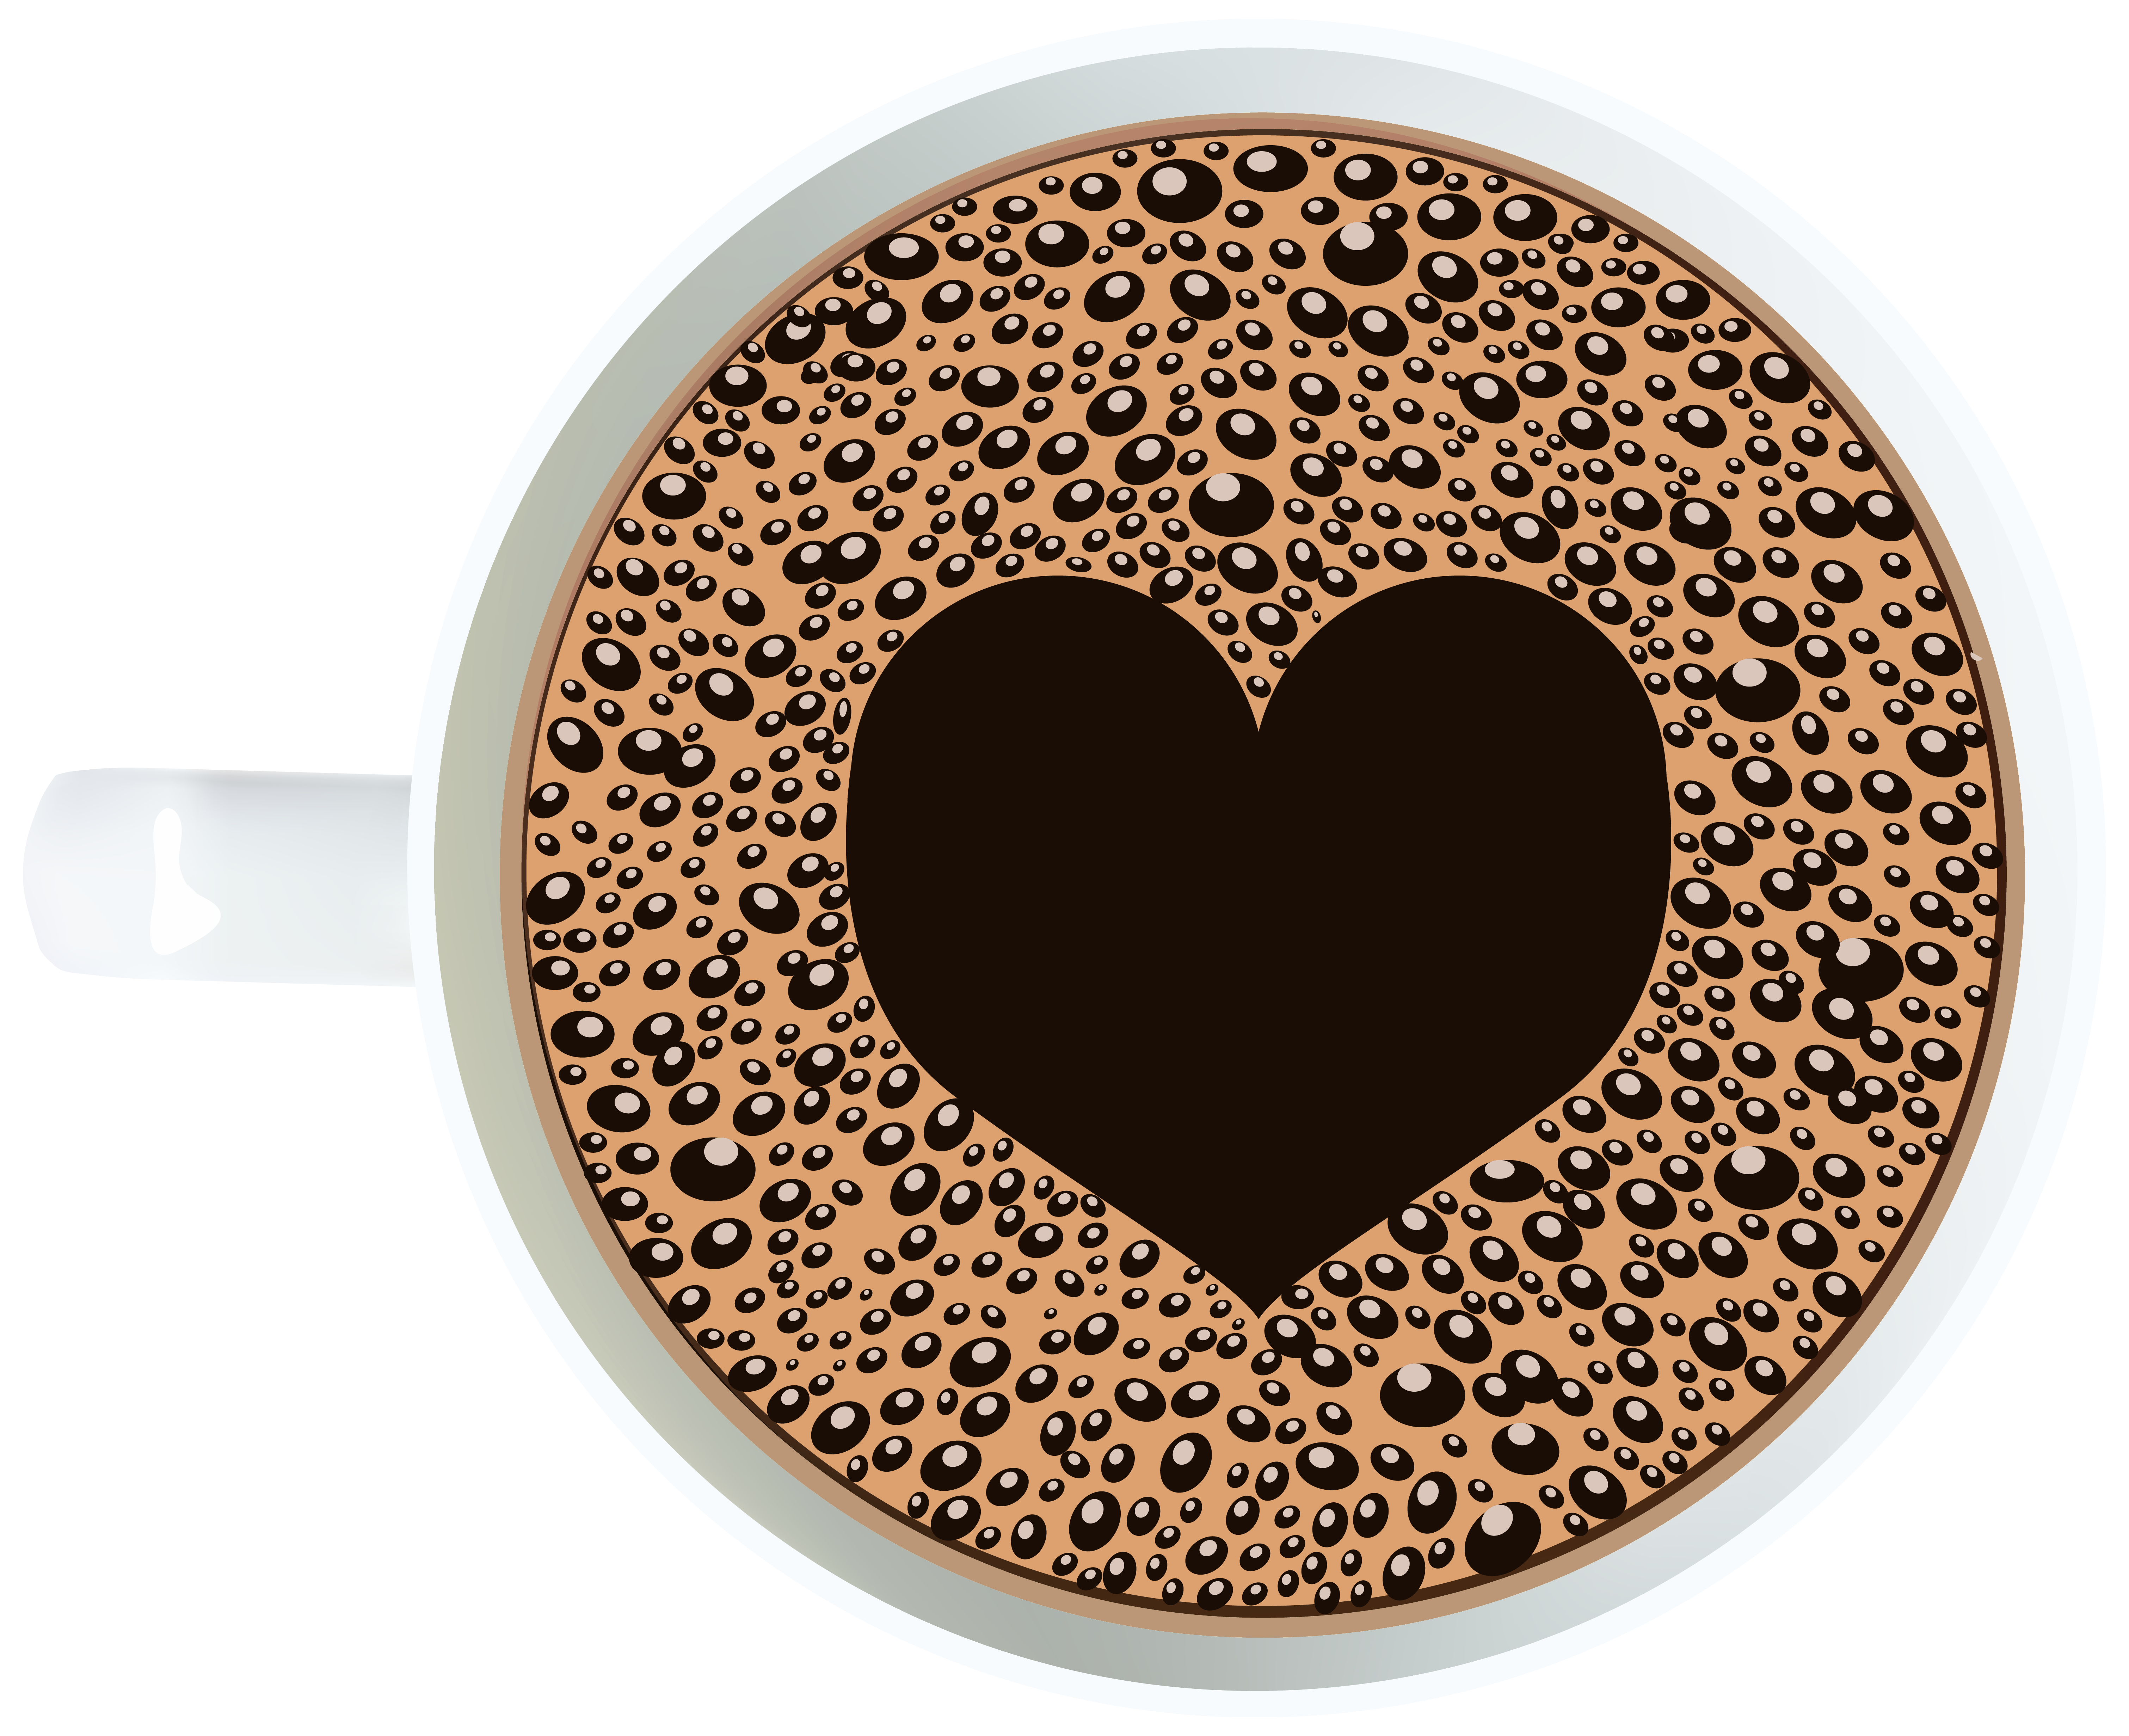 Coffee clipart cofee Art Cup Image Cup Heart